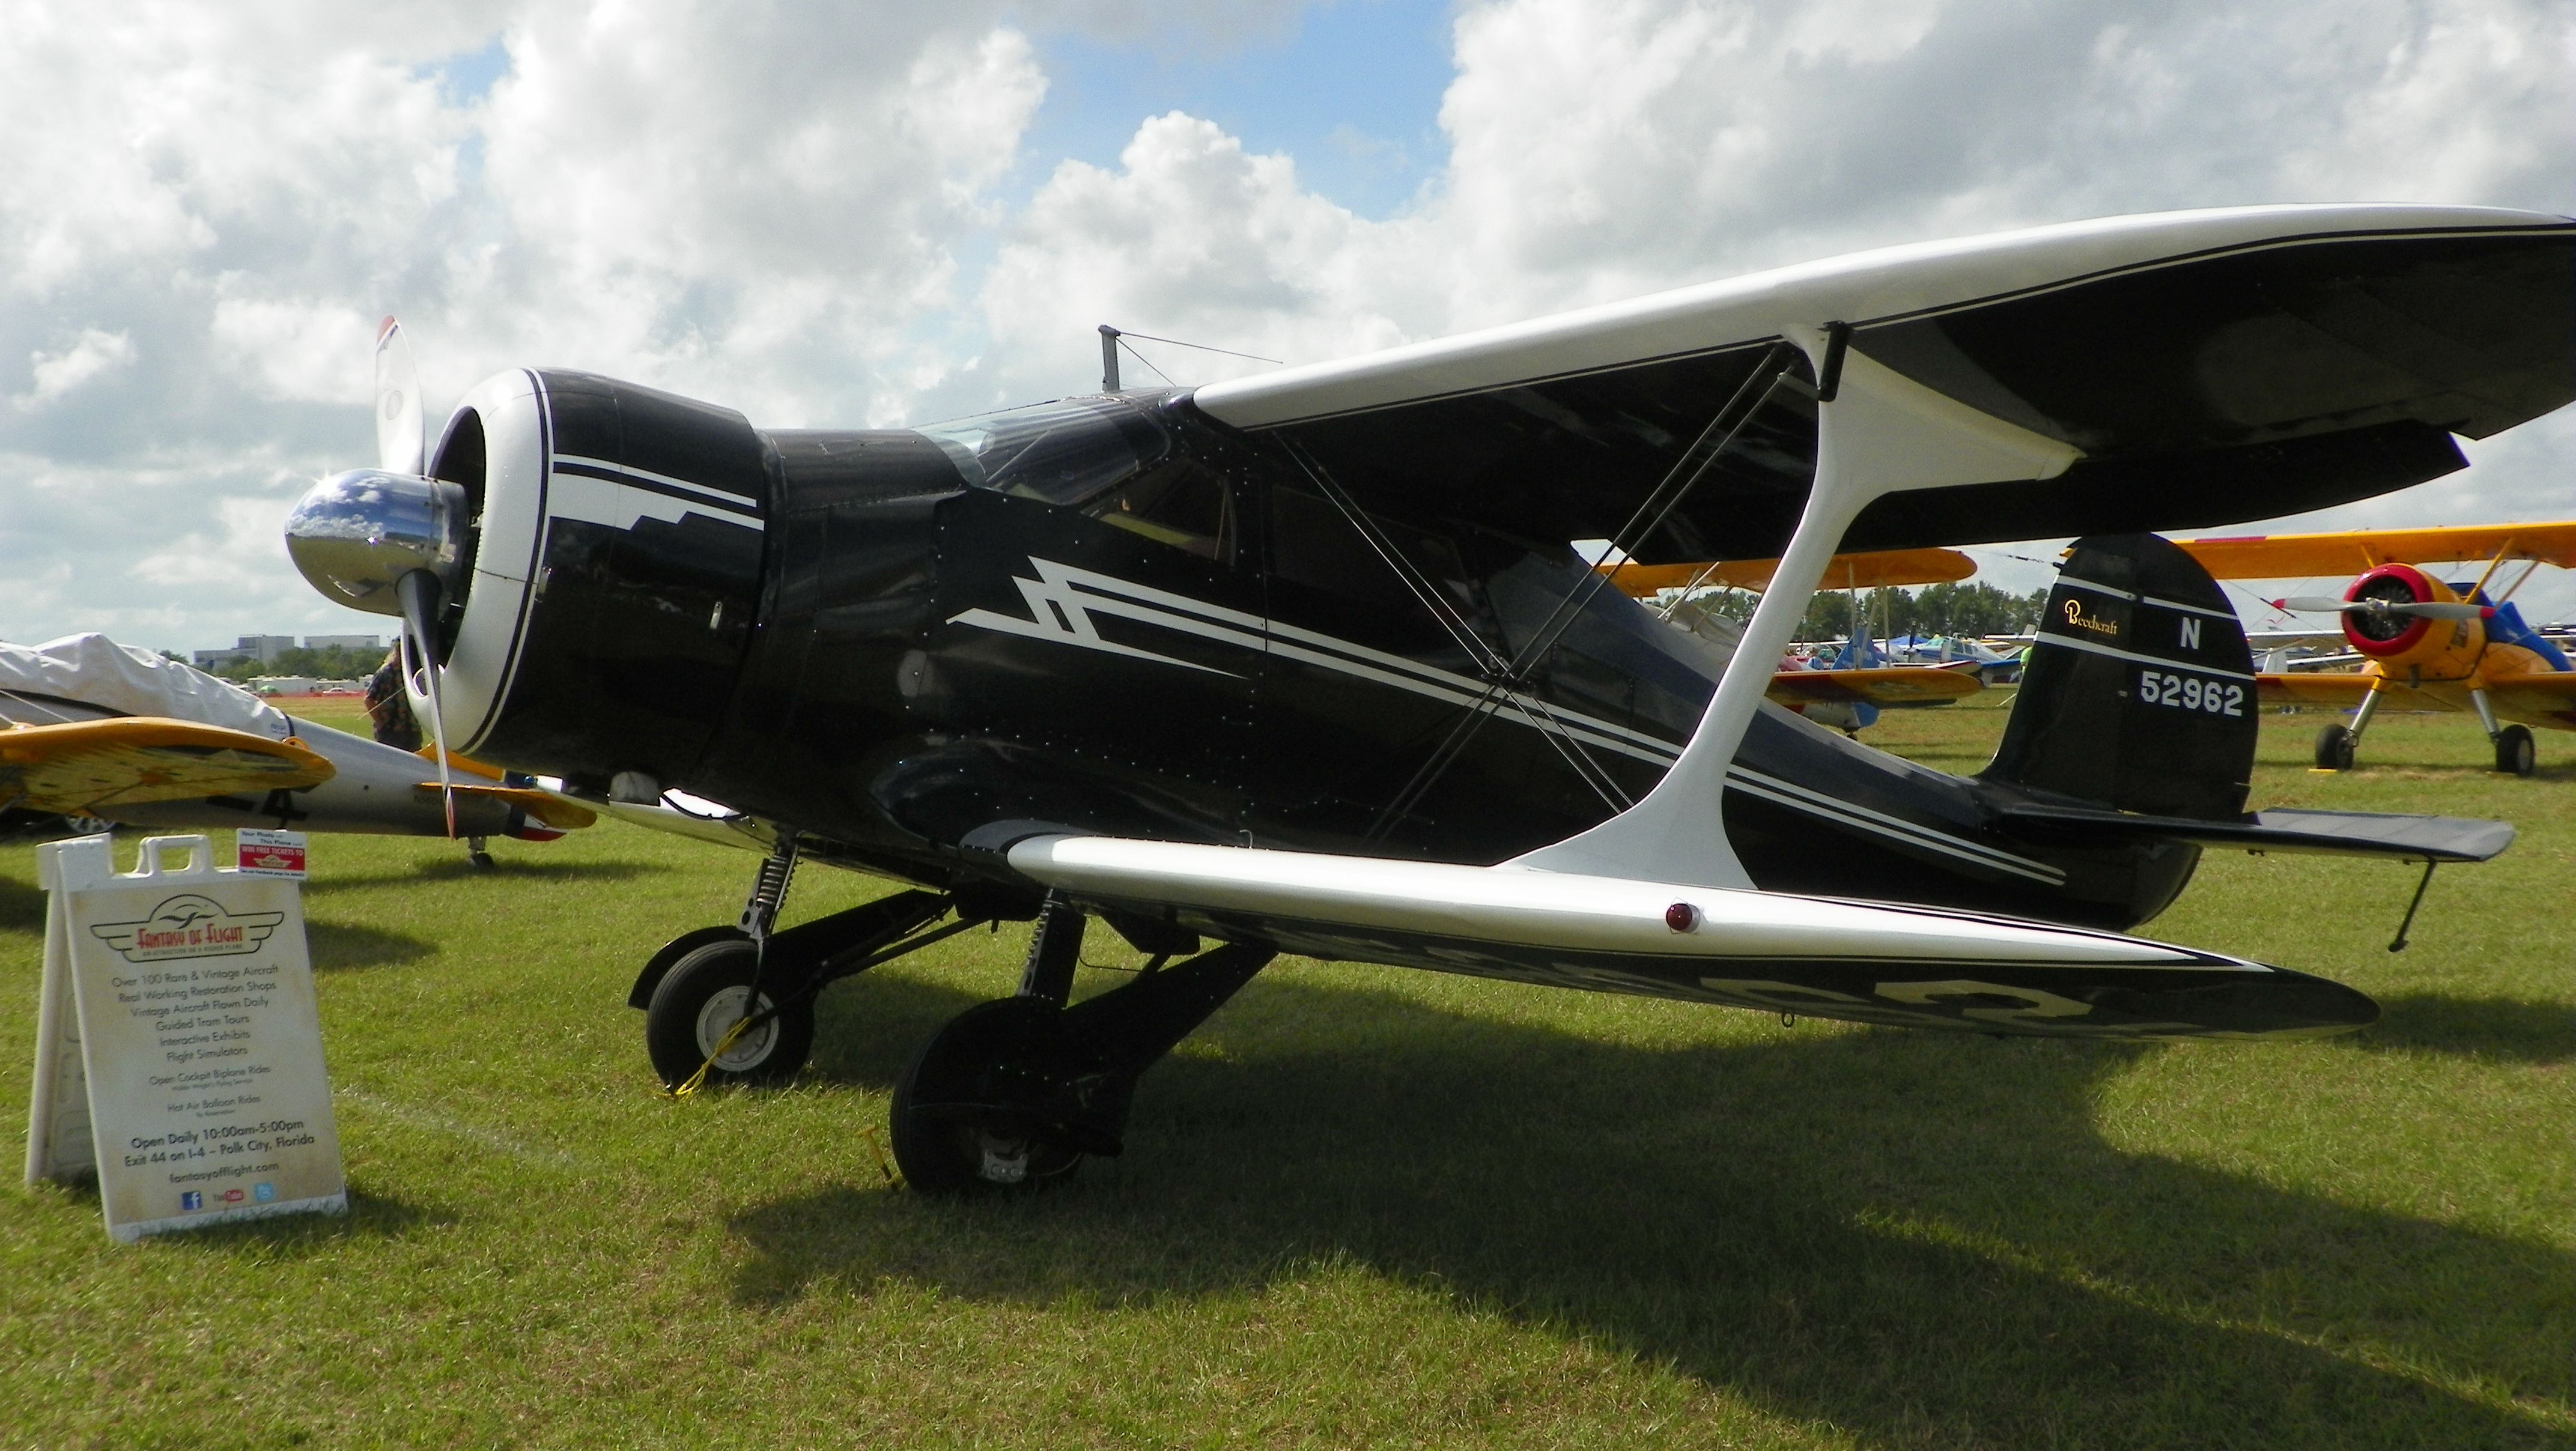 Beech Staggerwing from our collection on loan to the